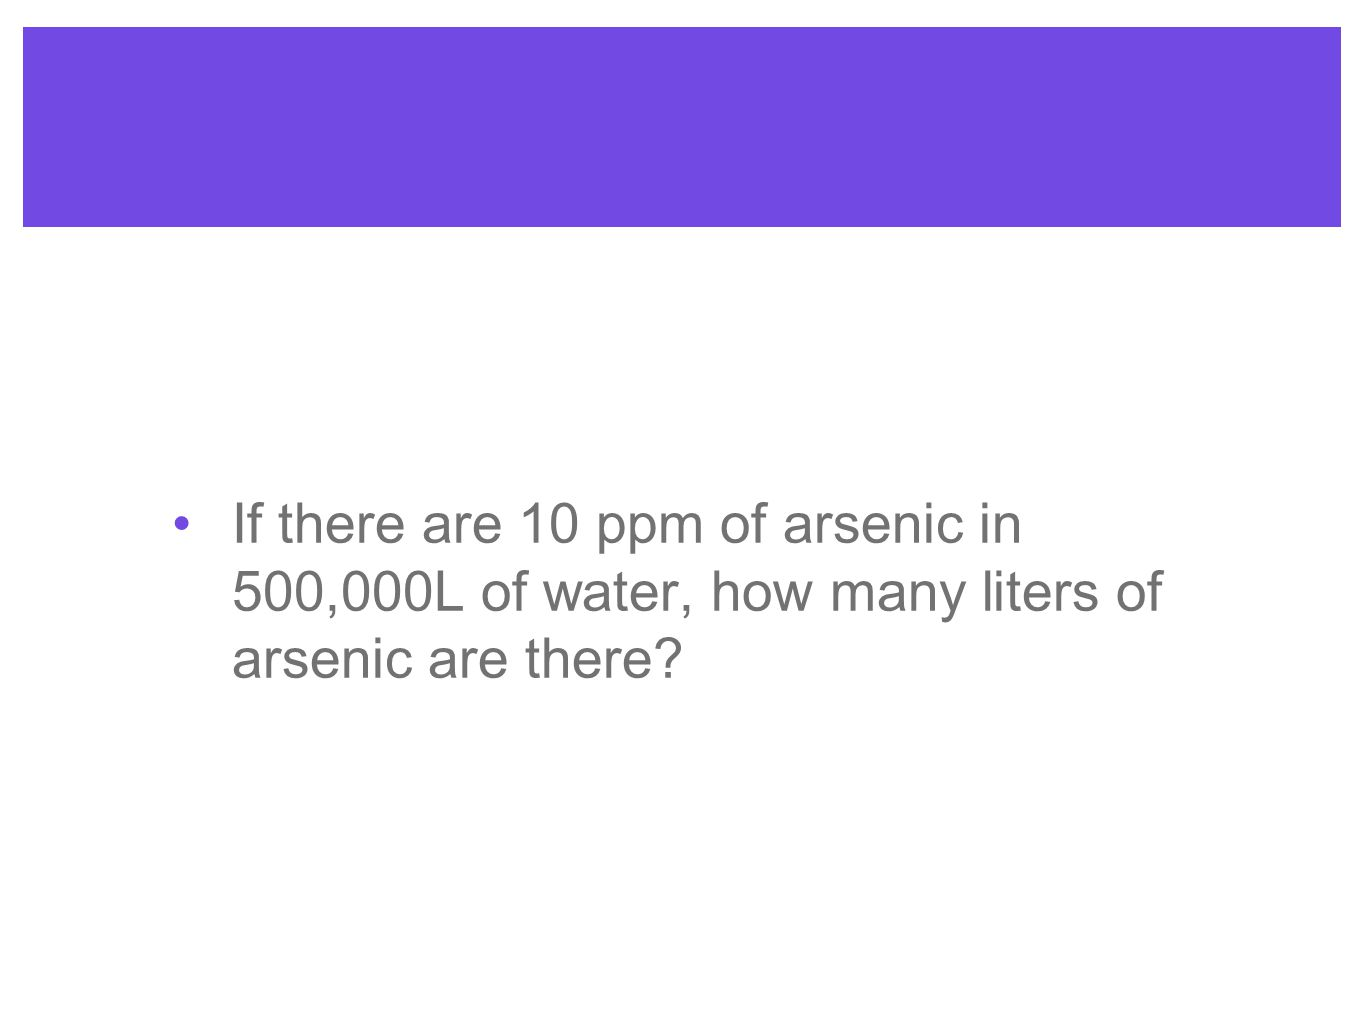 If there are 10 ppm of arsenic in 500,000L of water, how many liters of arsenic are there